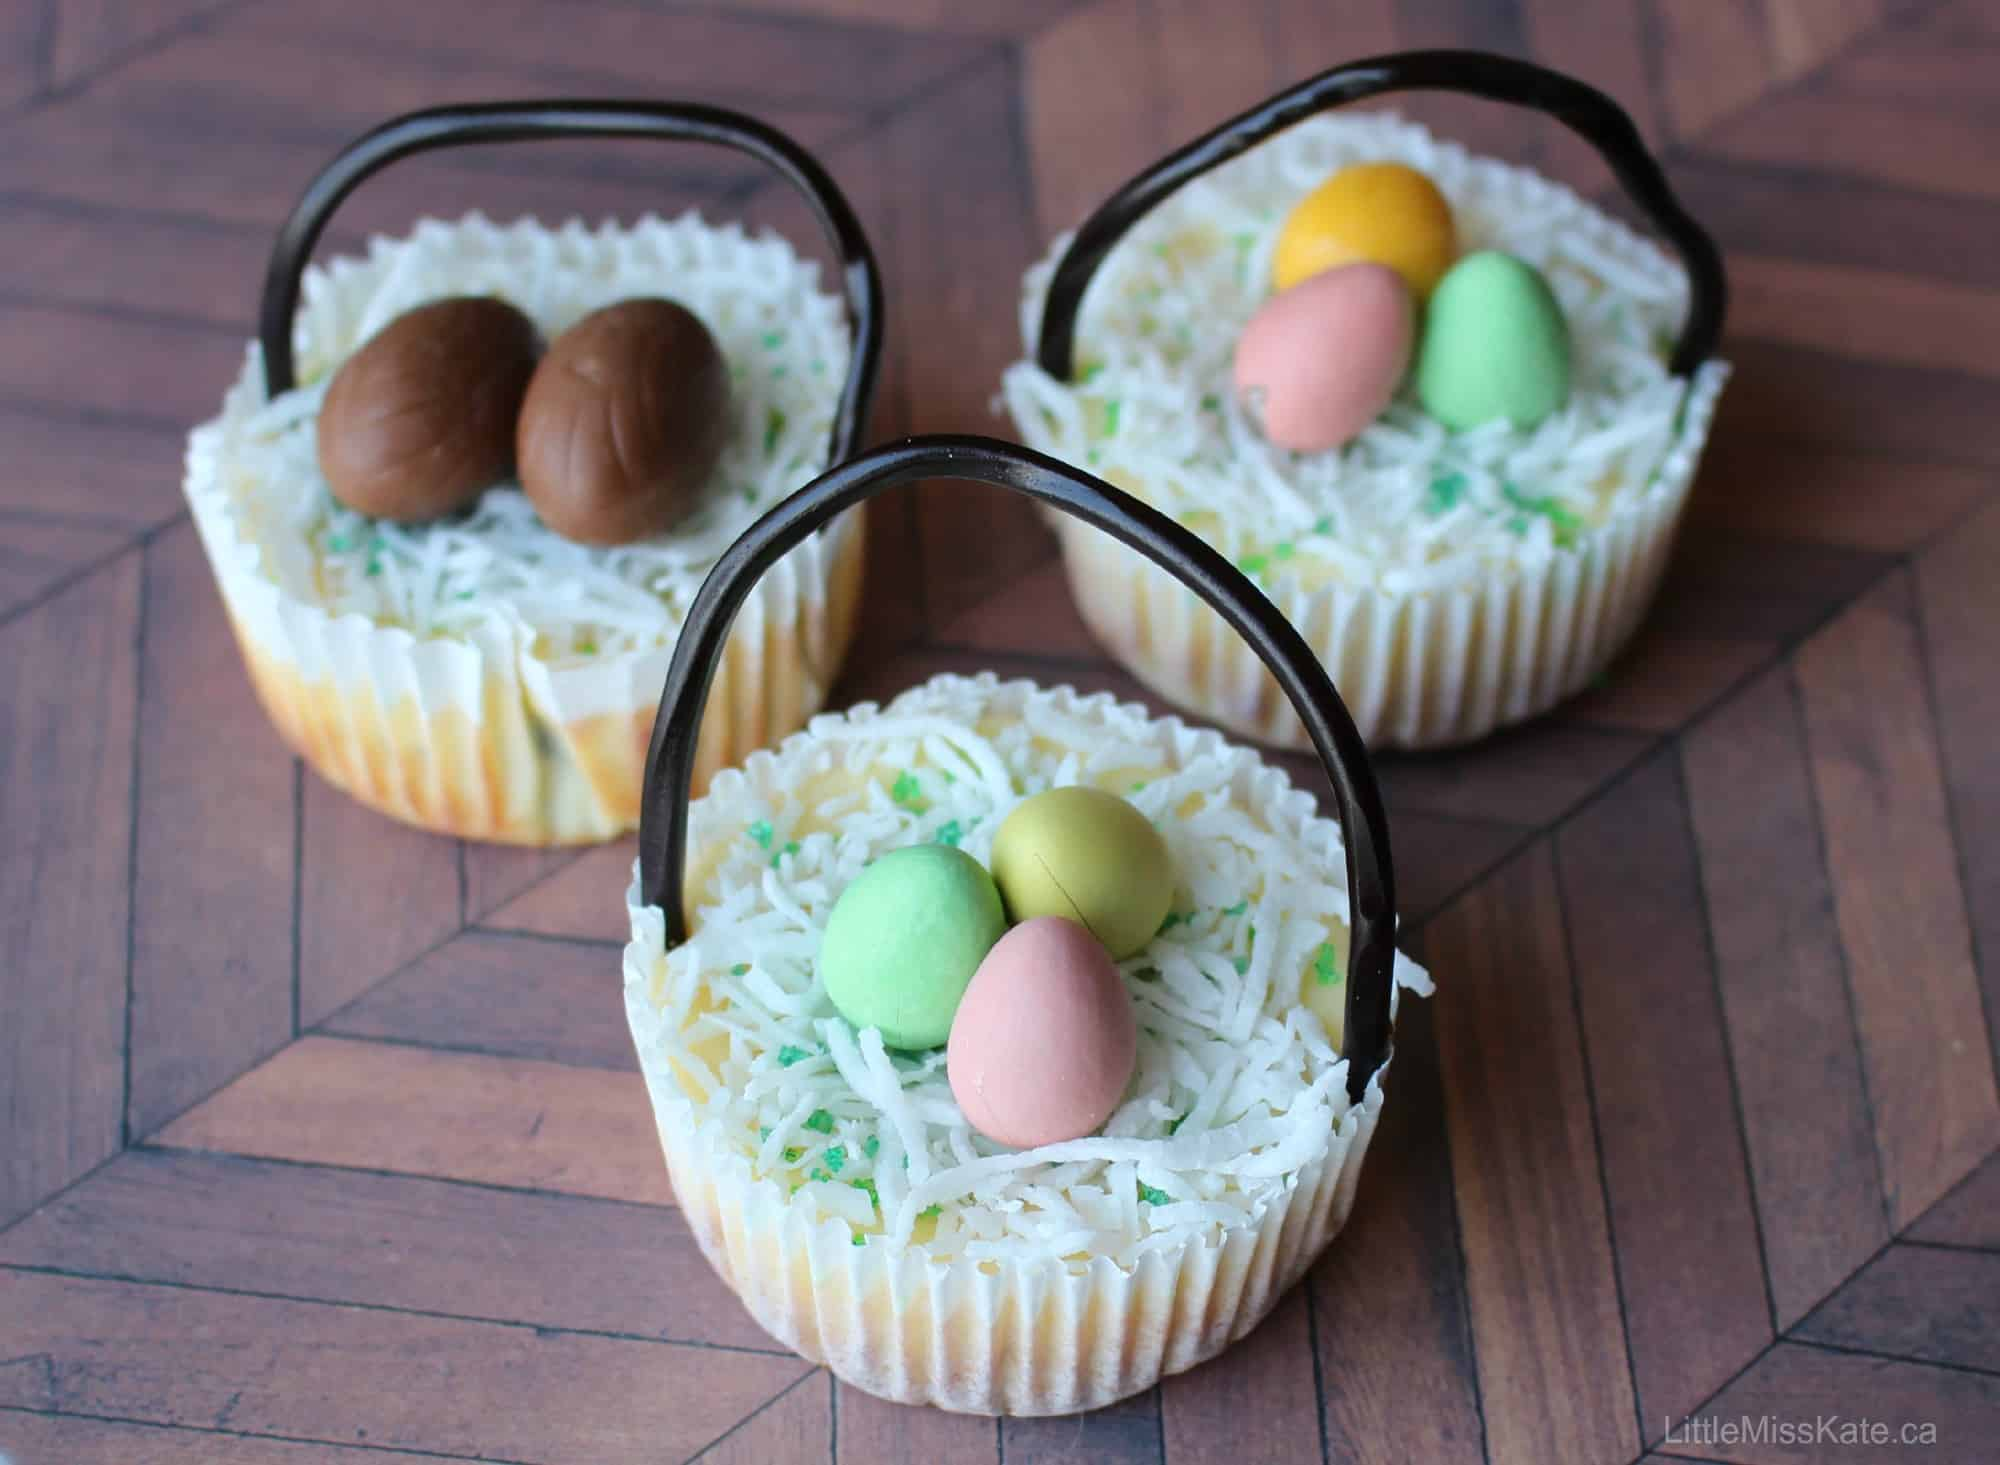 Mini Easter Basket Cheesecakes - Easter Dessert Idea via littlemisskate.ca